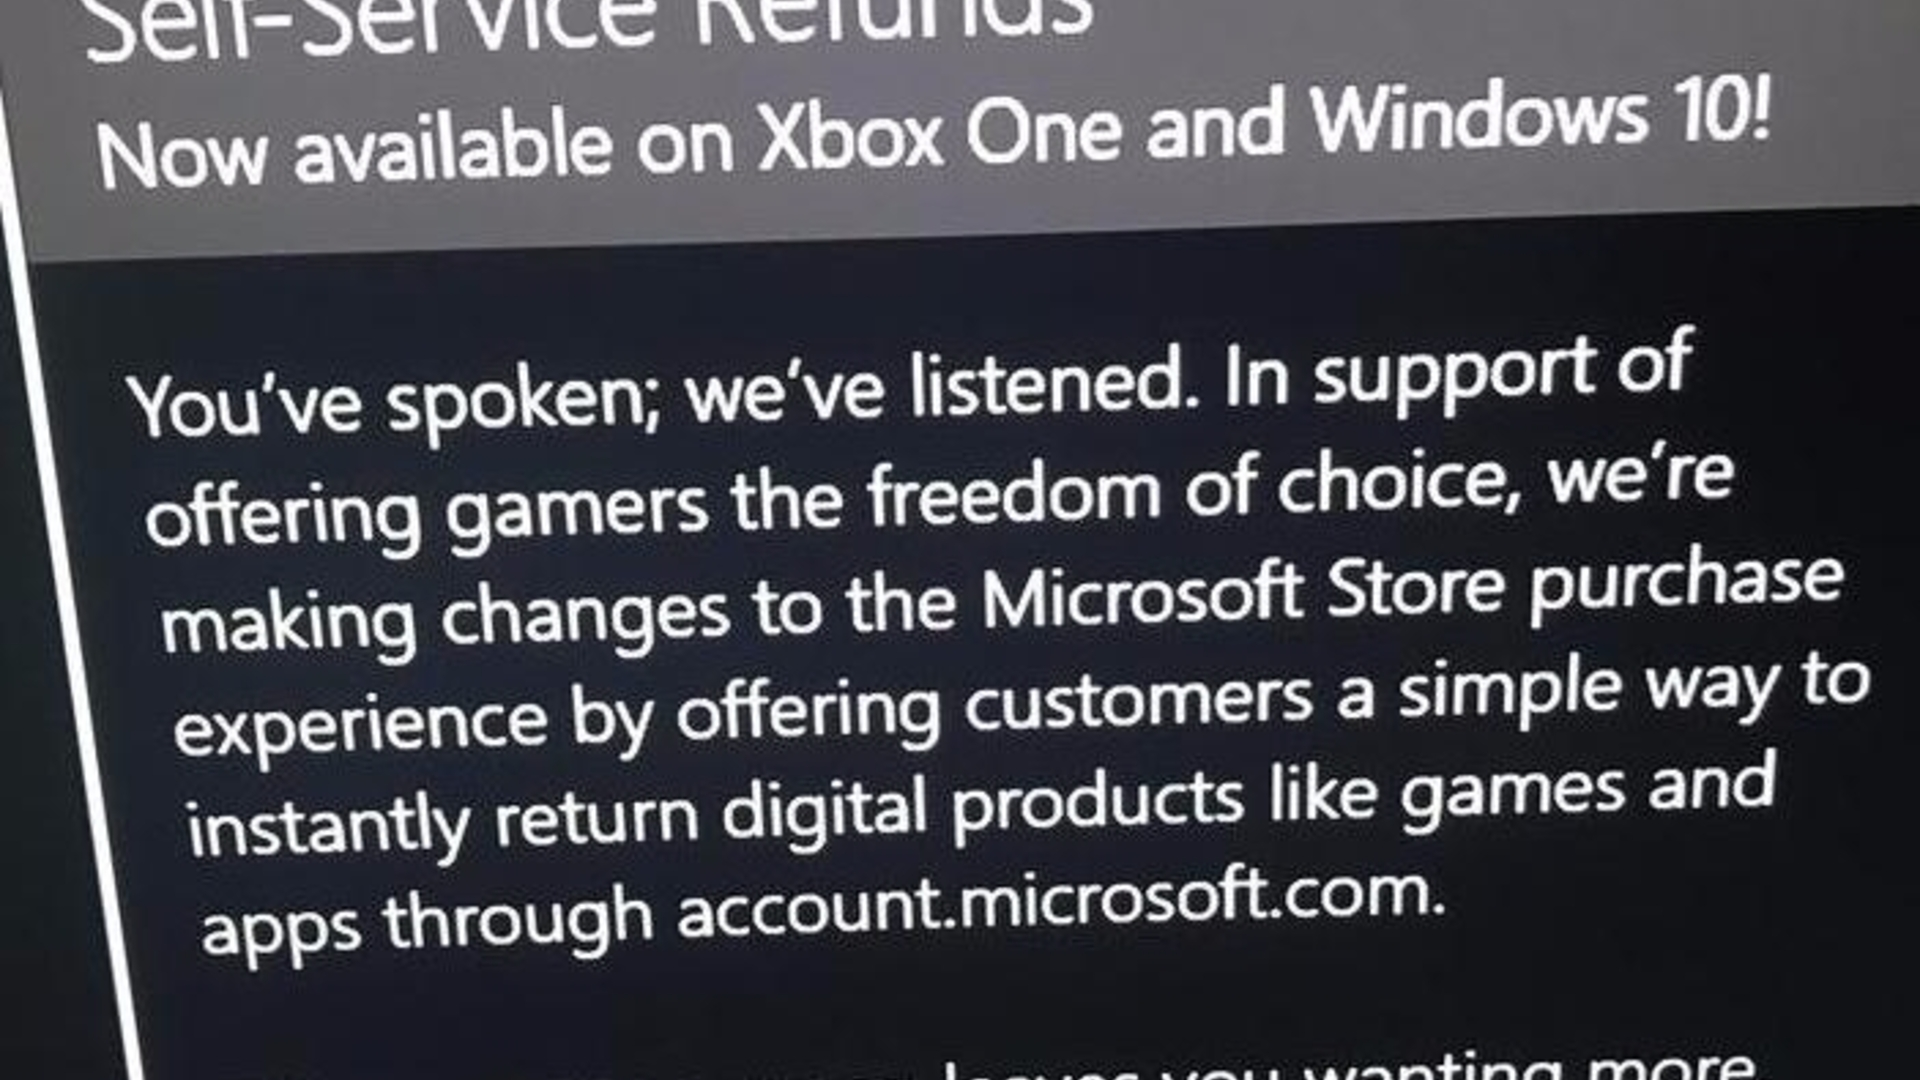 microsoft is adding self service refunds for digital xbox win10